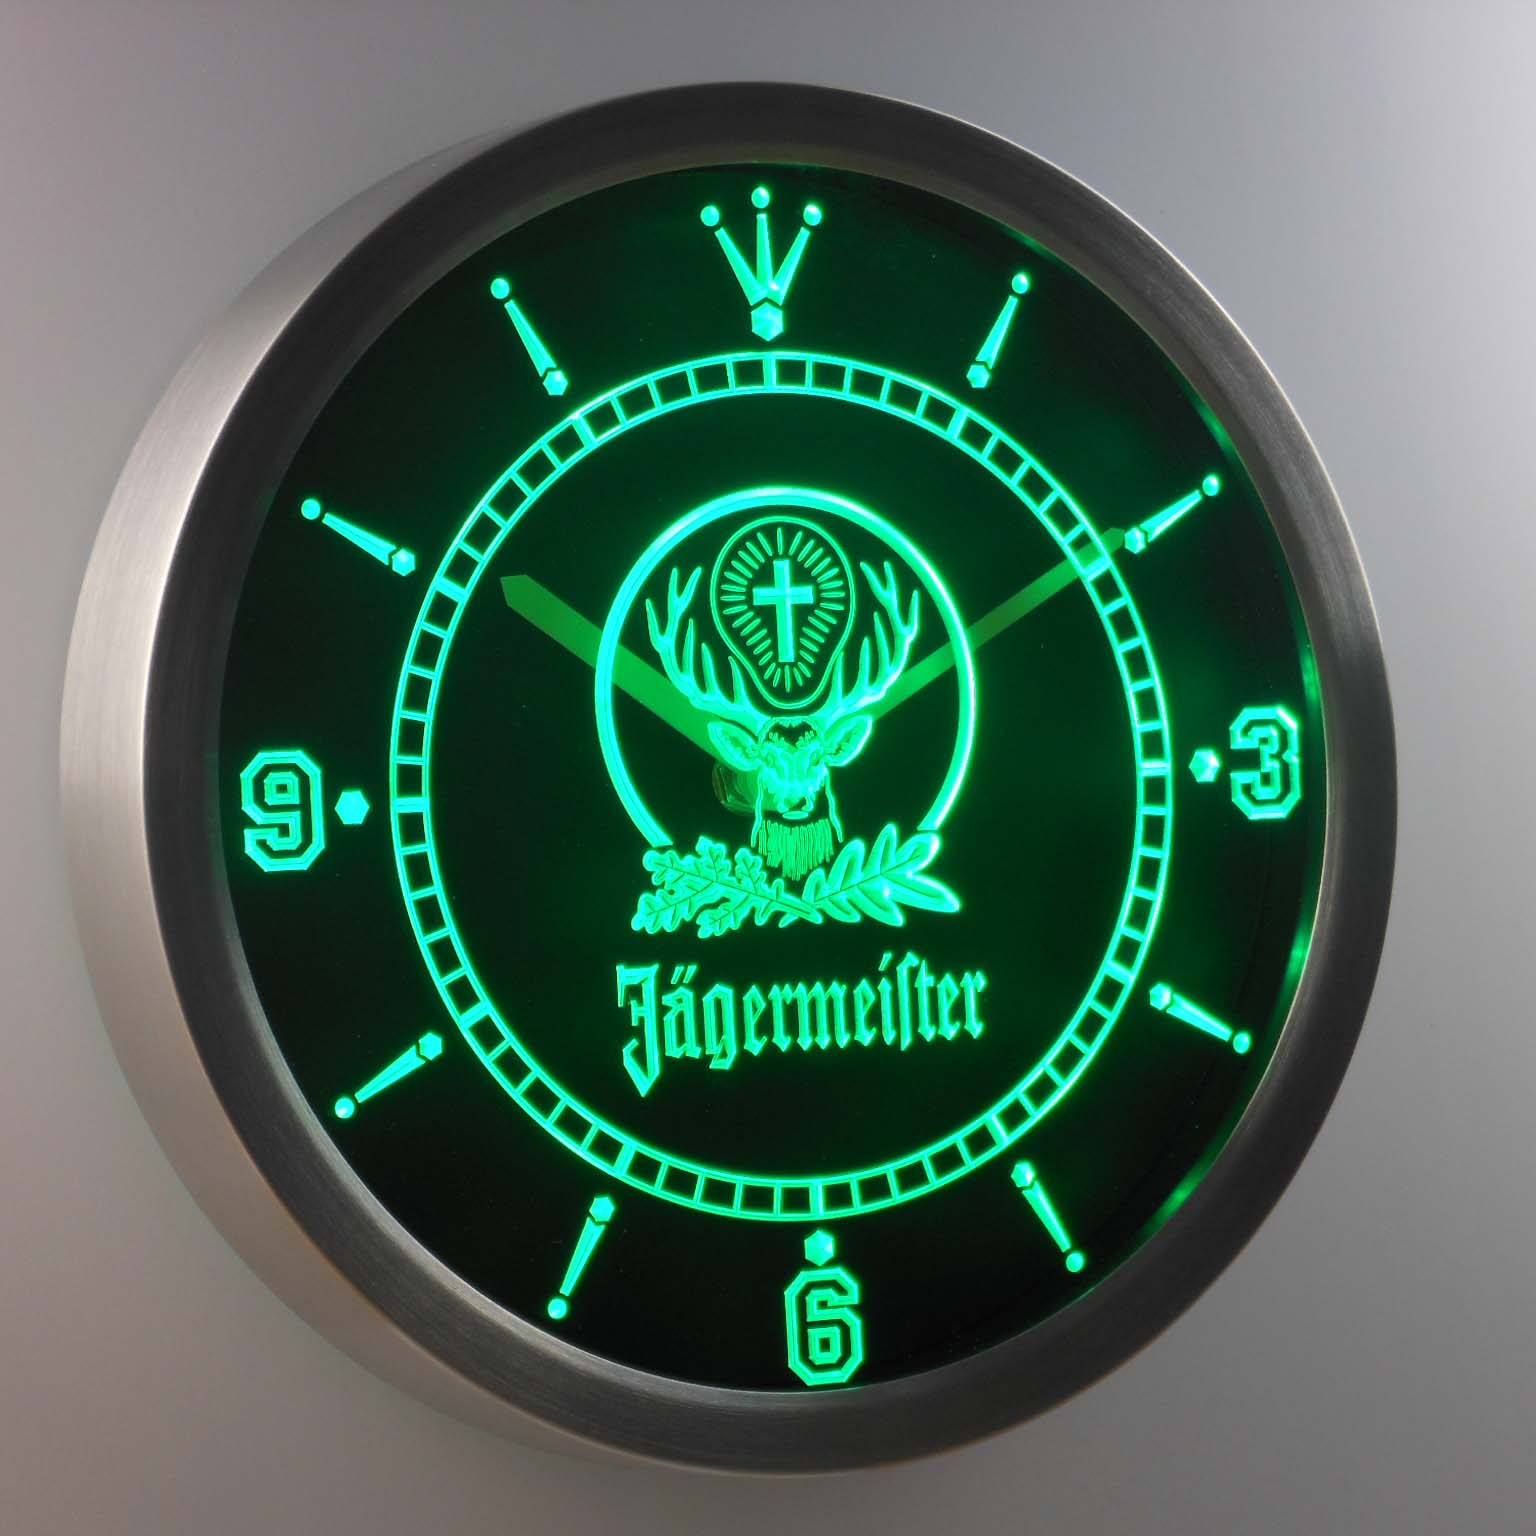 Nc0572 Jagermeister Beer Neon Light Signs LED Wall Clock